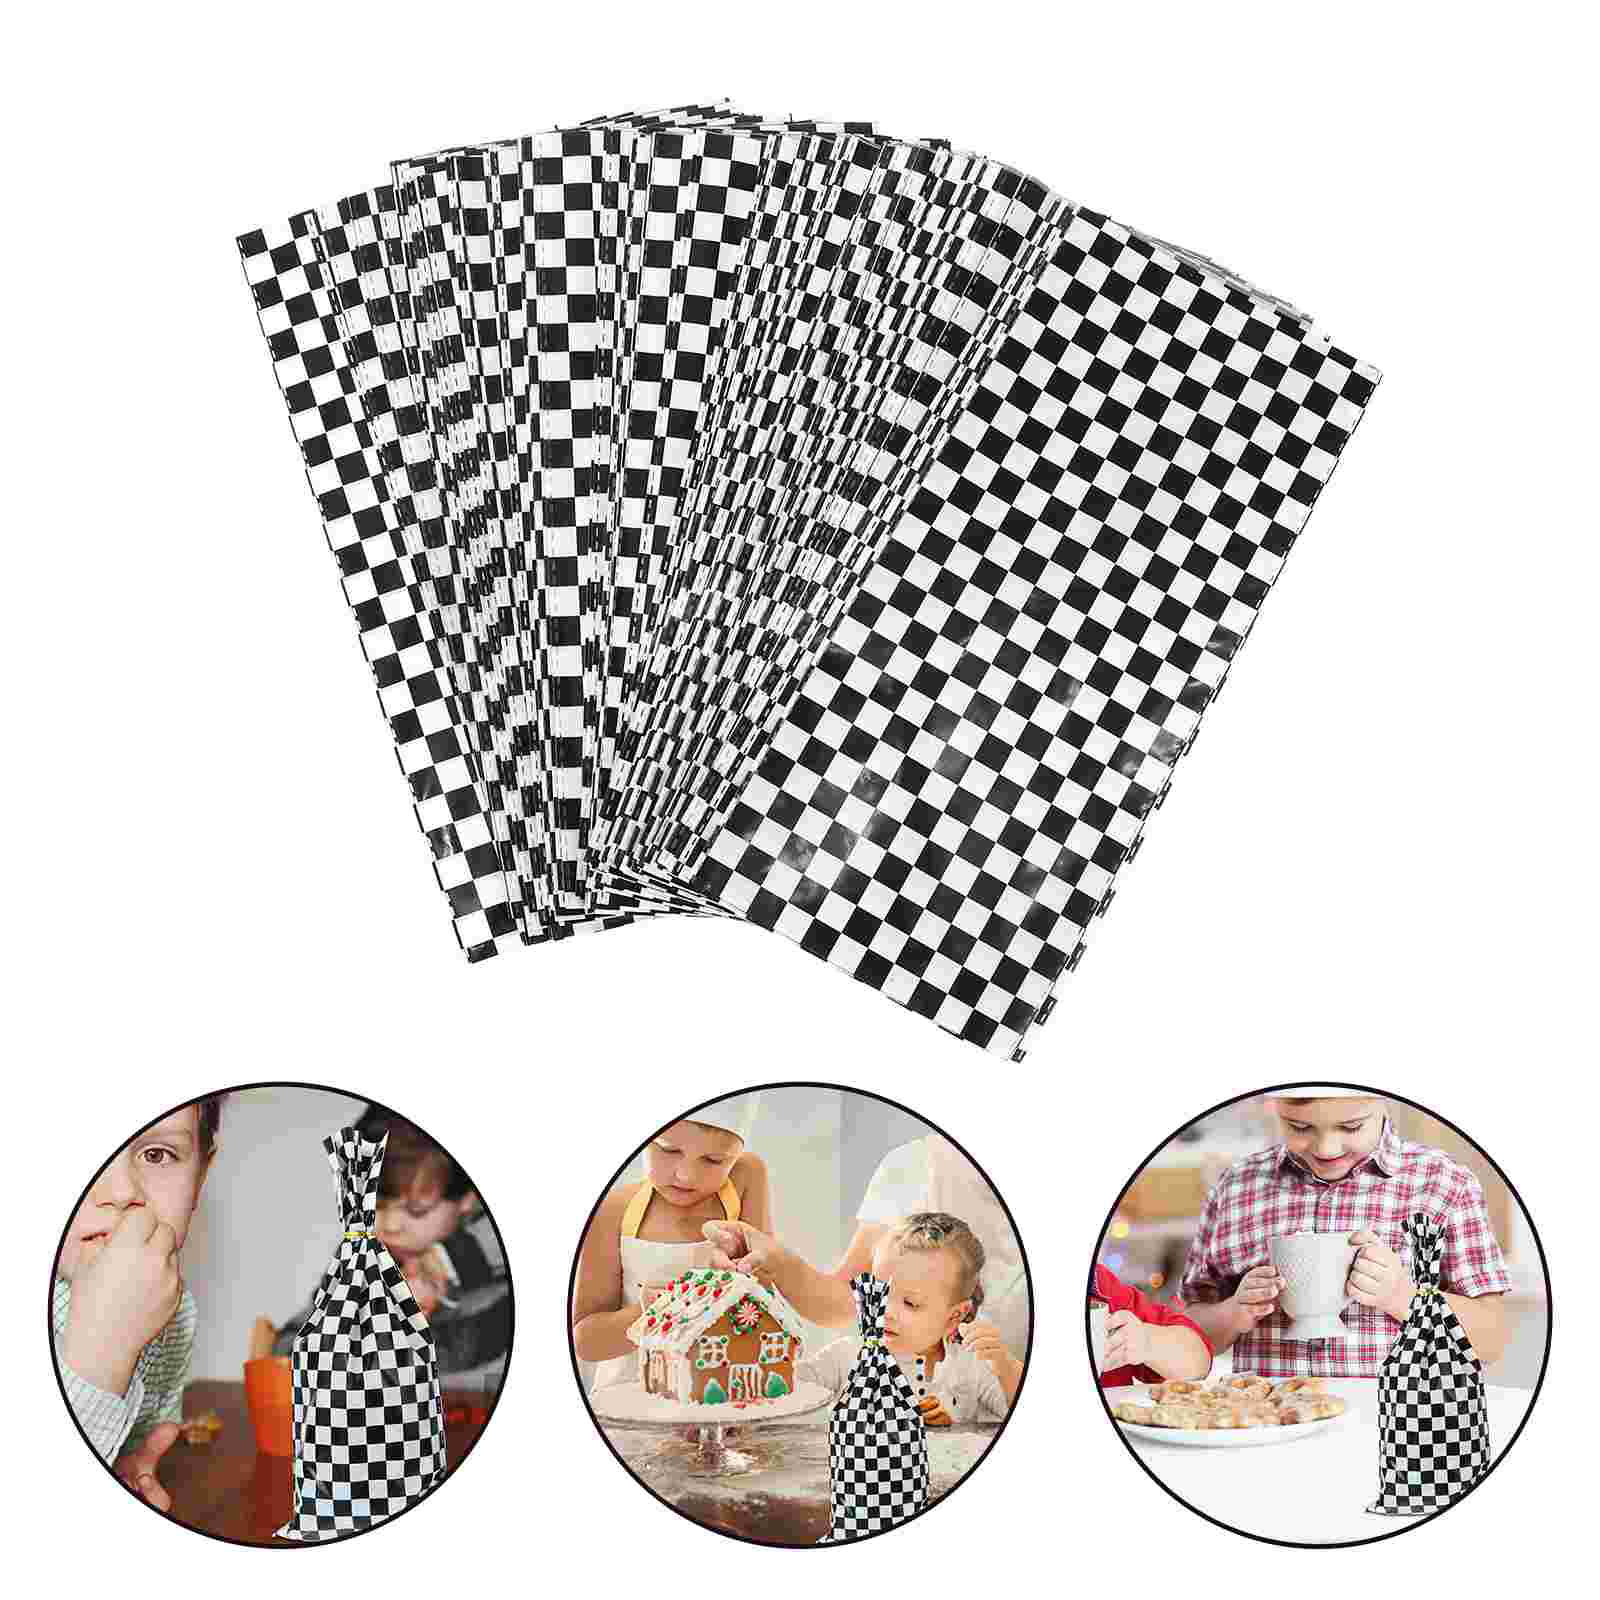 100pcs Food Packing Bag Lattice Printed Treat Bags Creative Bakery Pouches